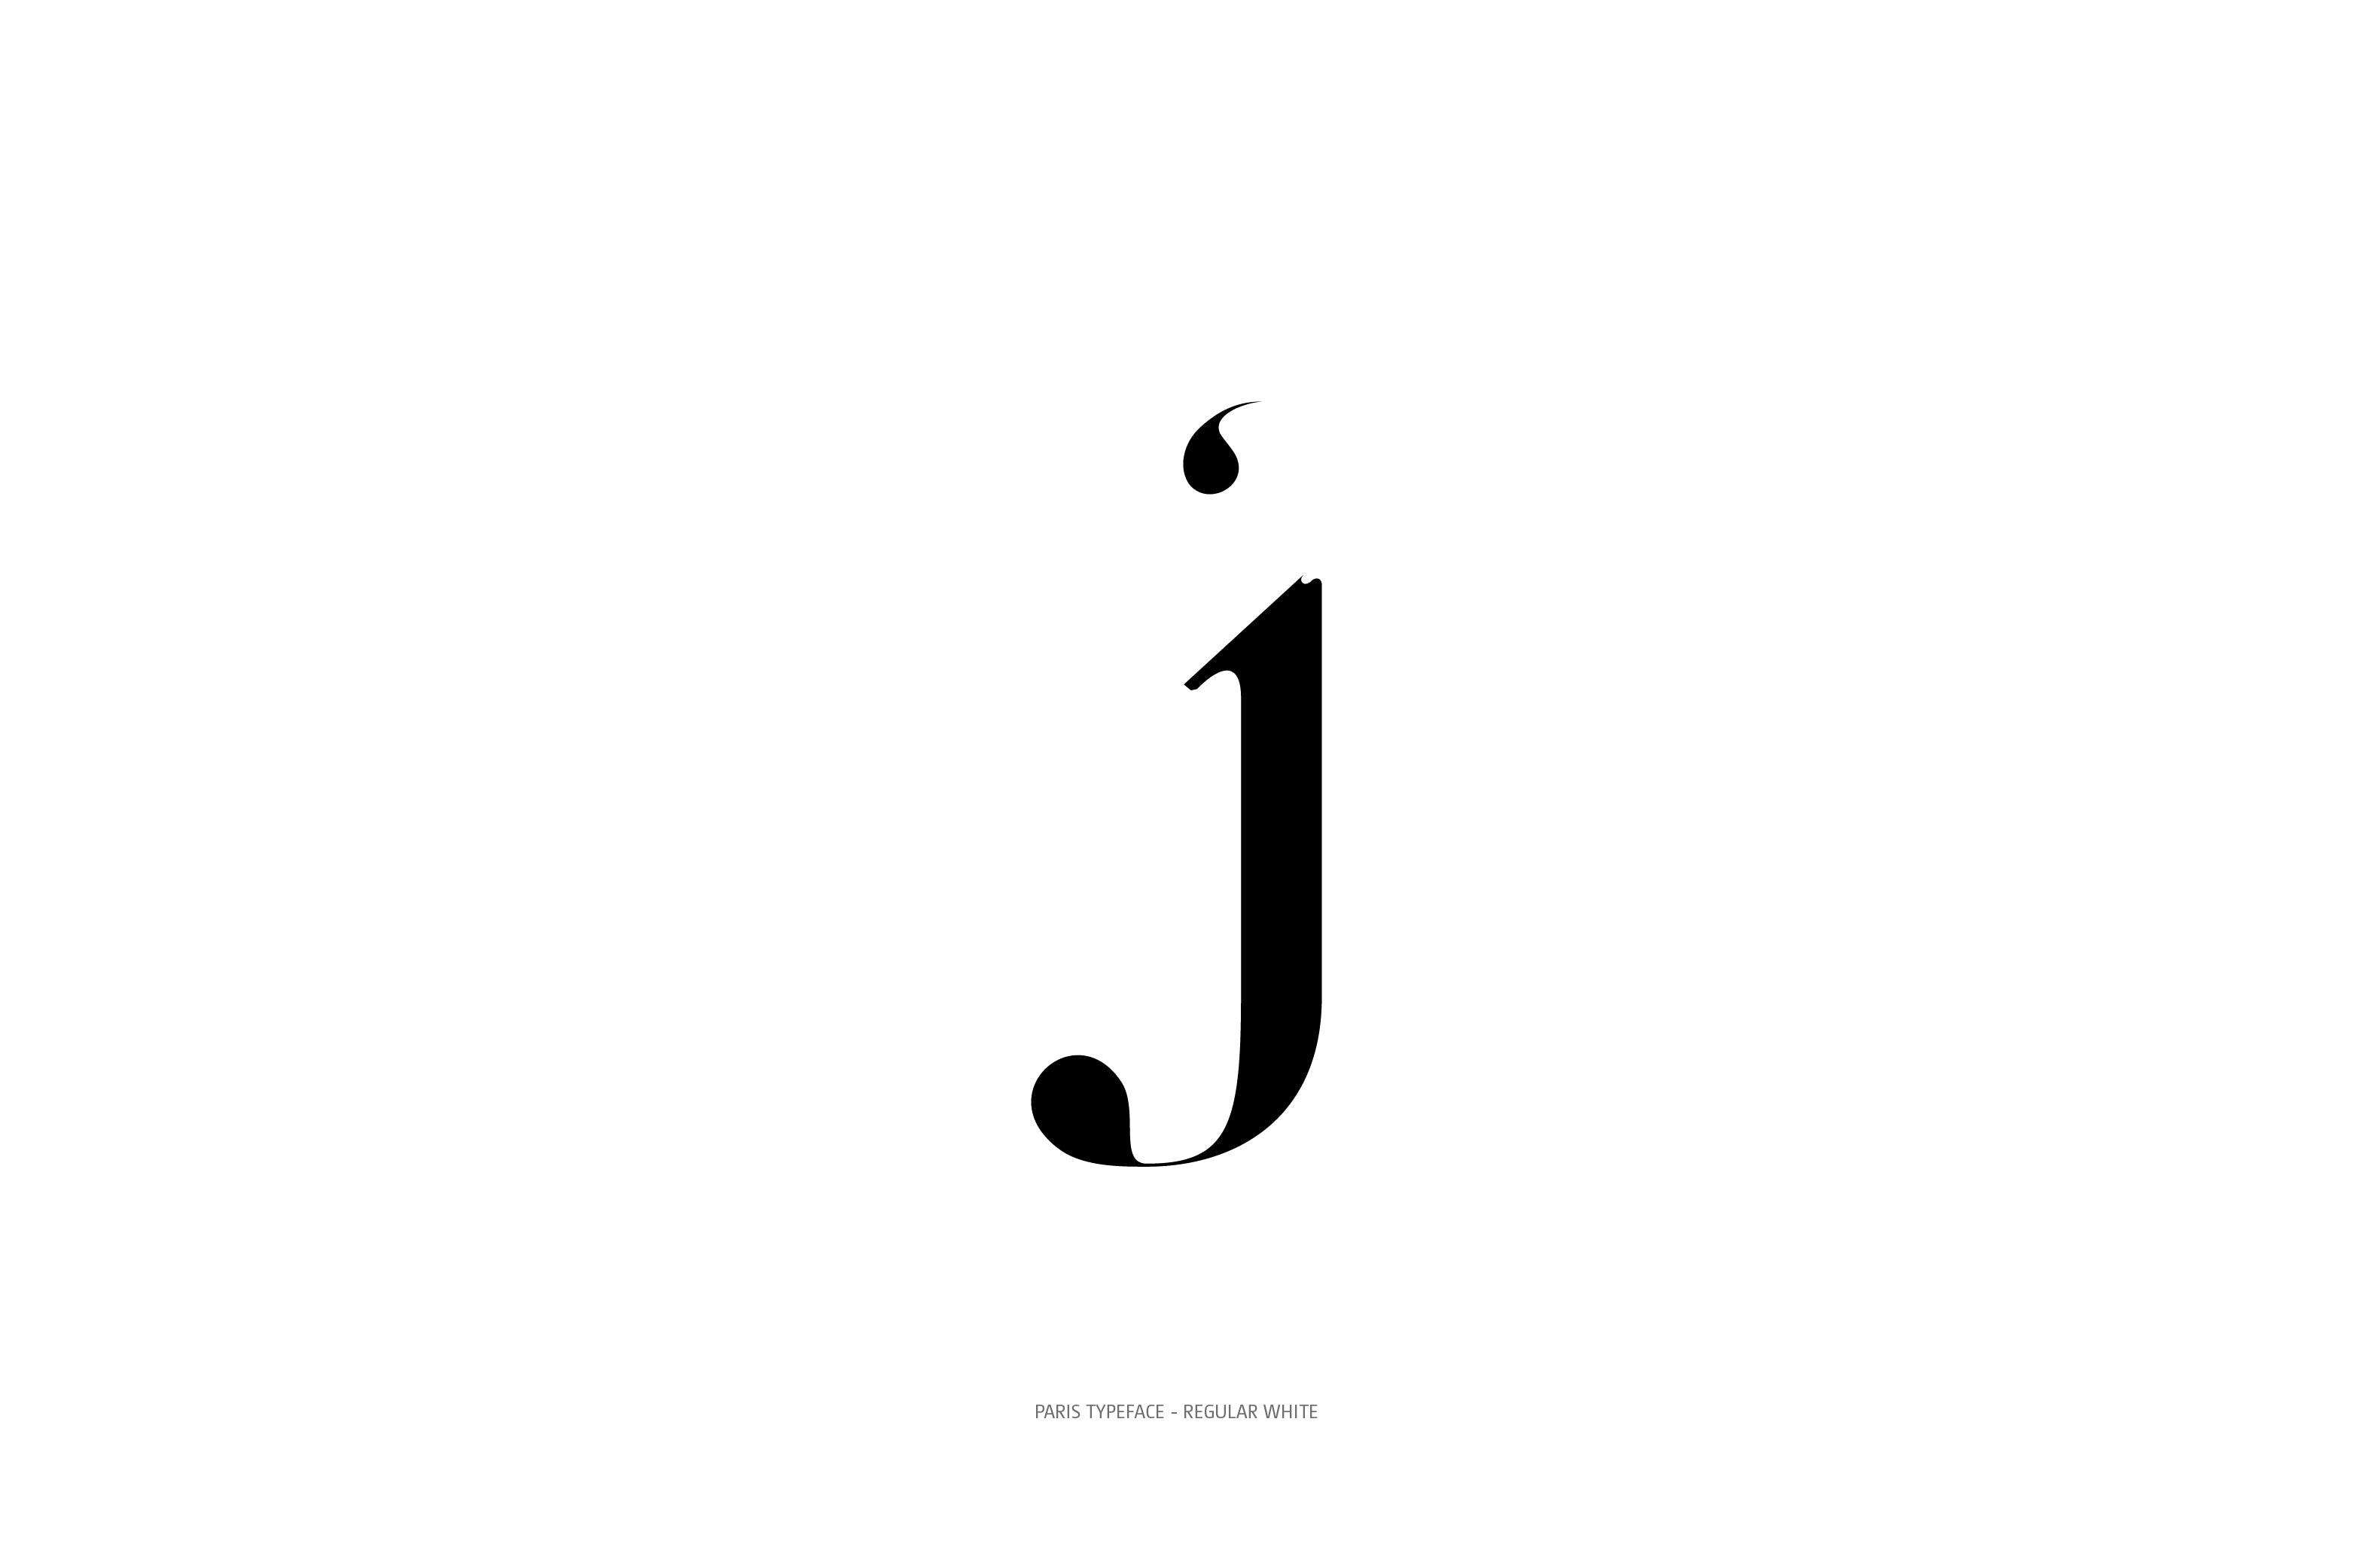 Paris Typeface Regular White j